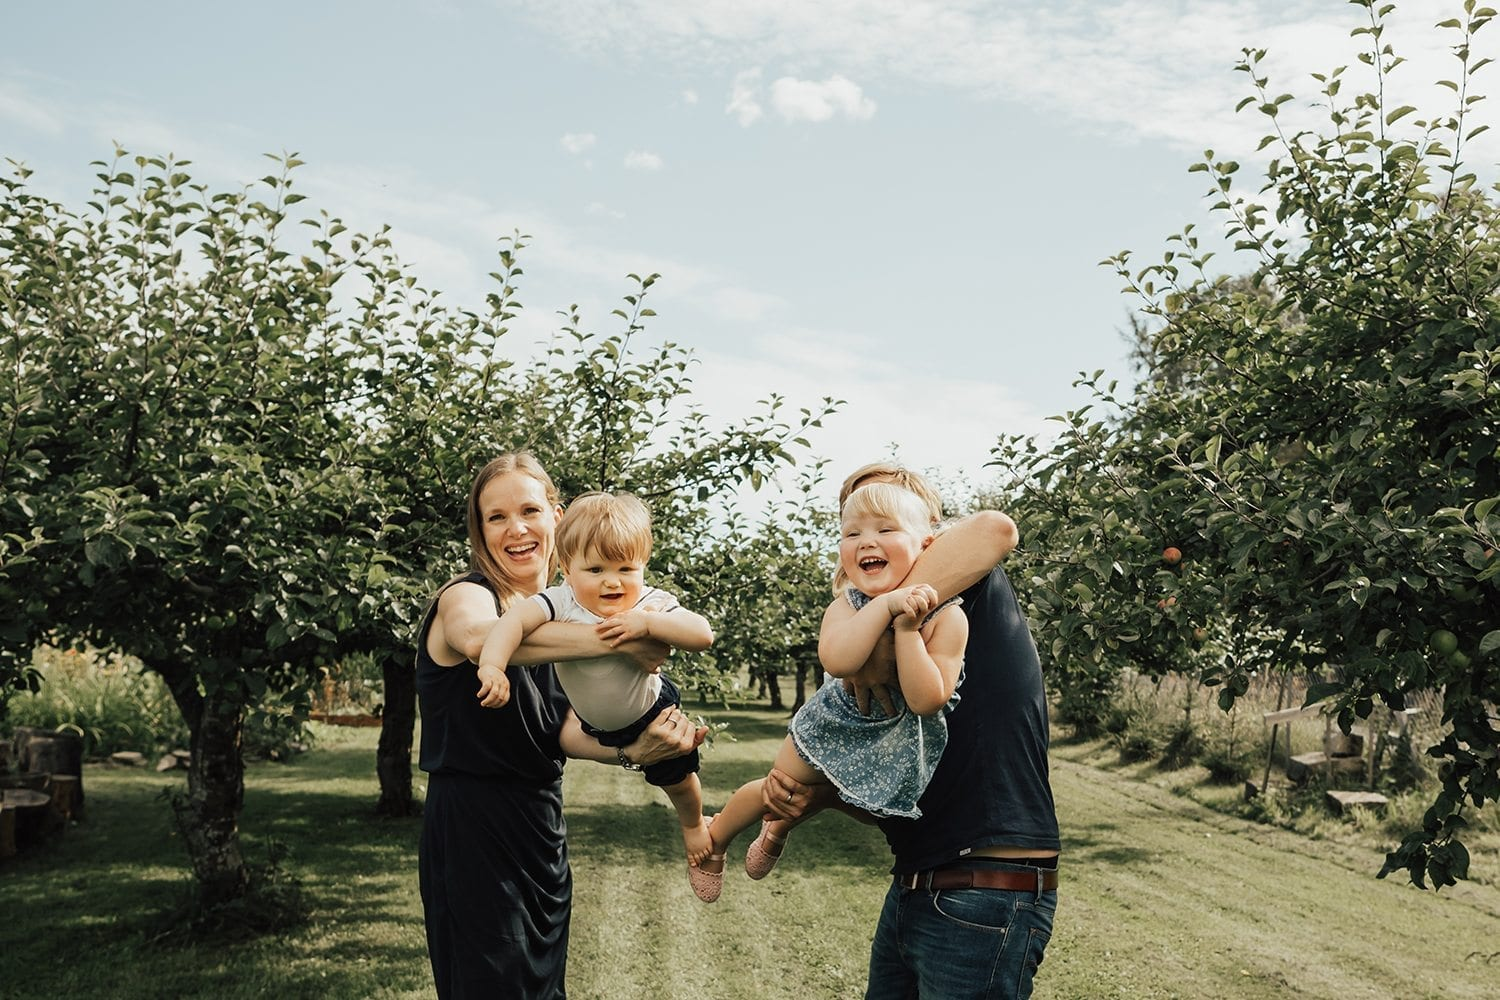 Outdoor lifestyle family shoot in Norway, four people amongst apple trees